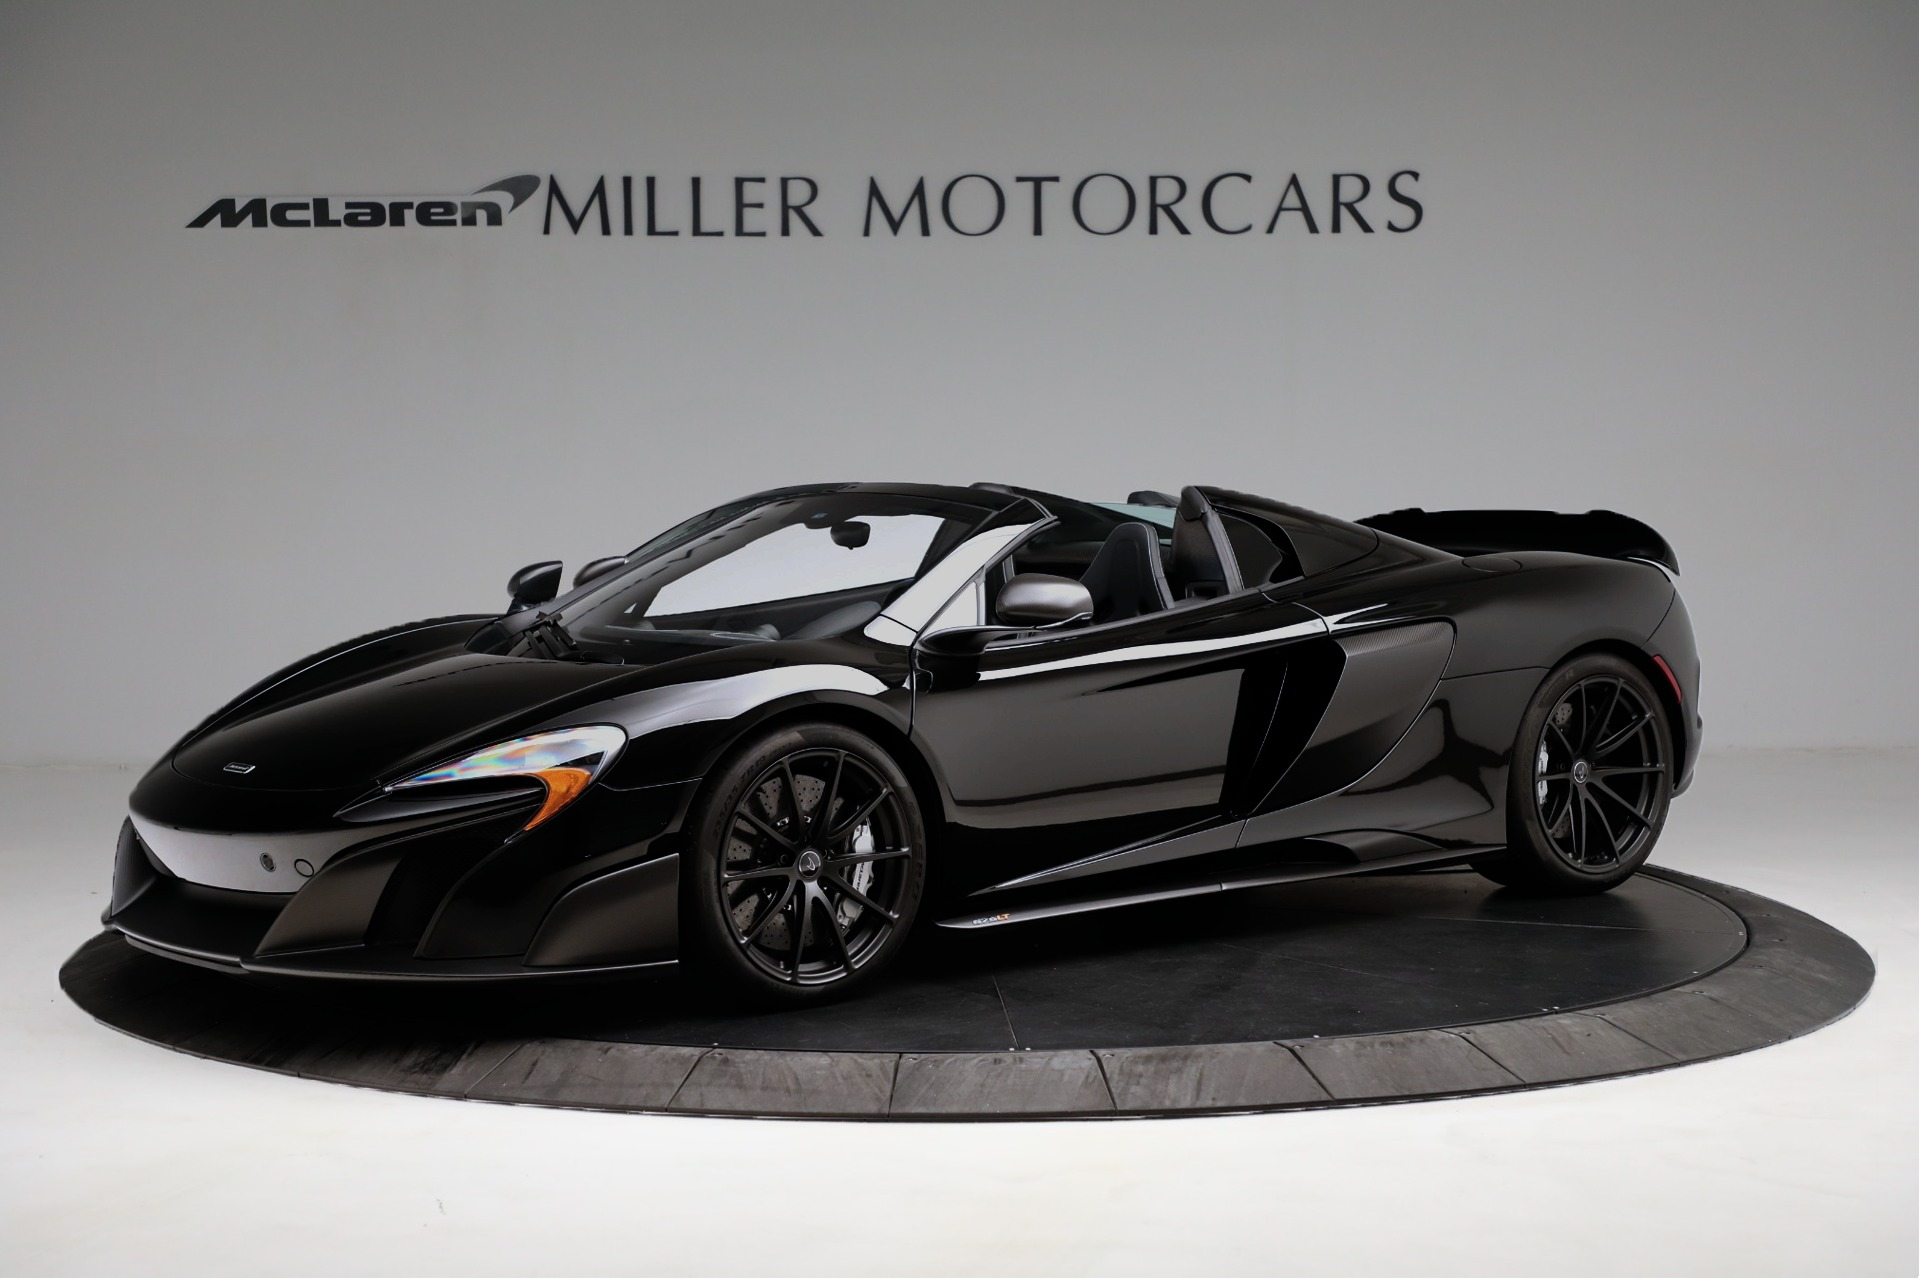 Used 2016 McLaren 675LT Convertible for sale Sold at Bugatti of Greenwich in Greenwich CT 06830 1